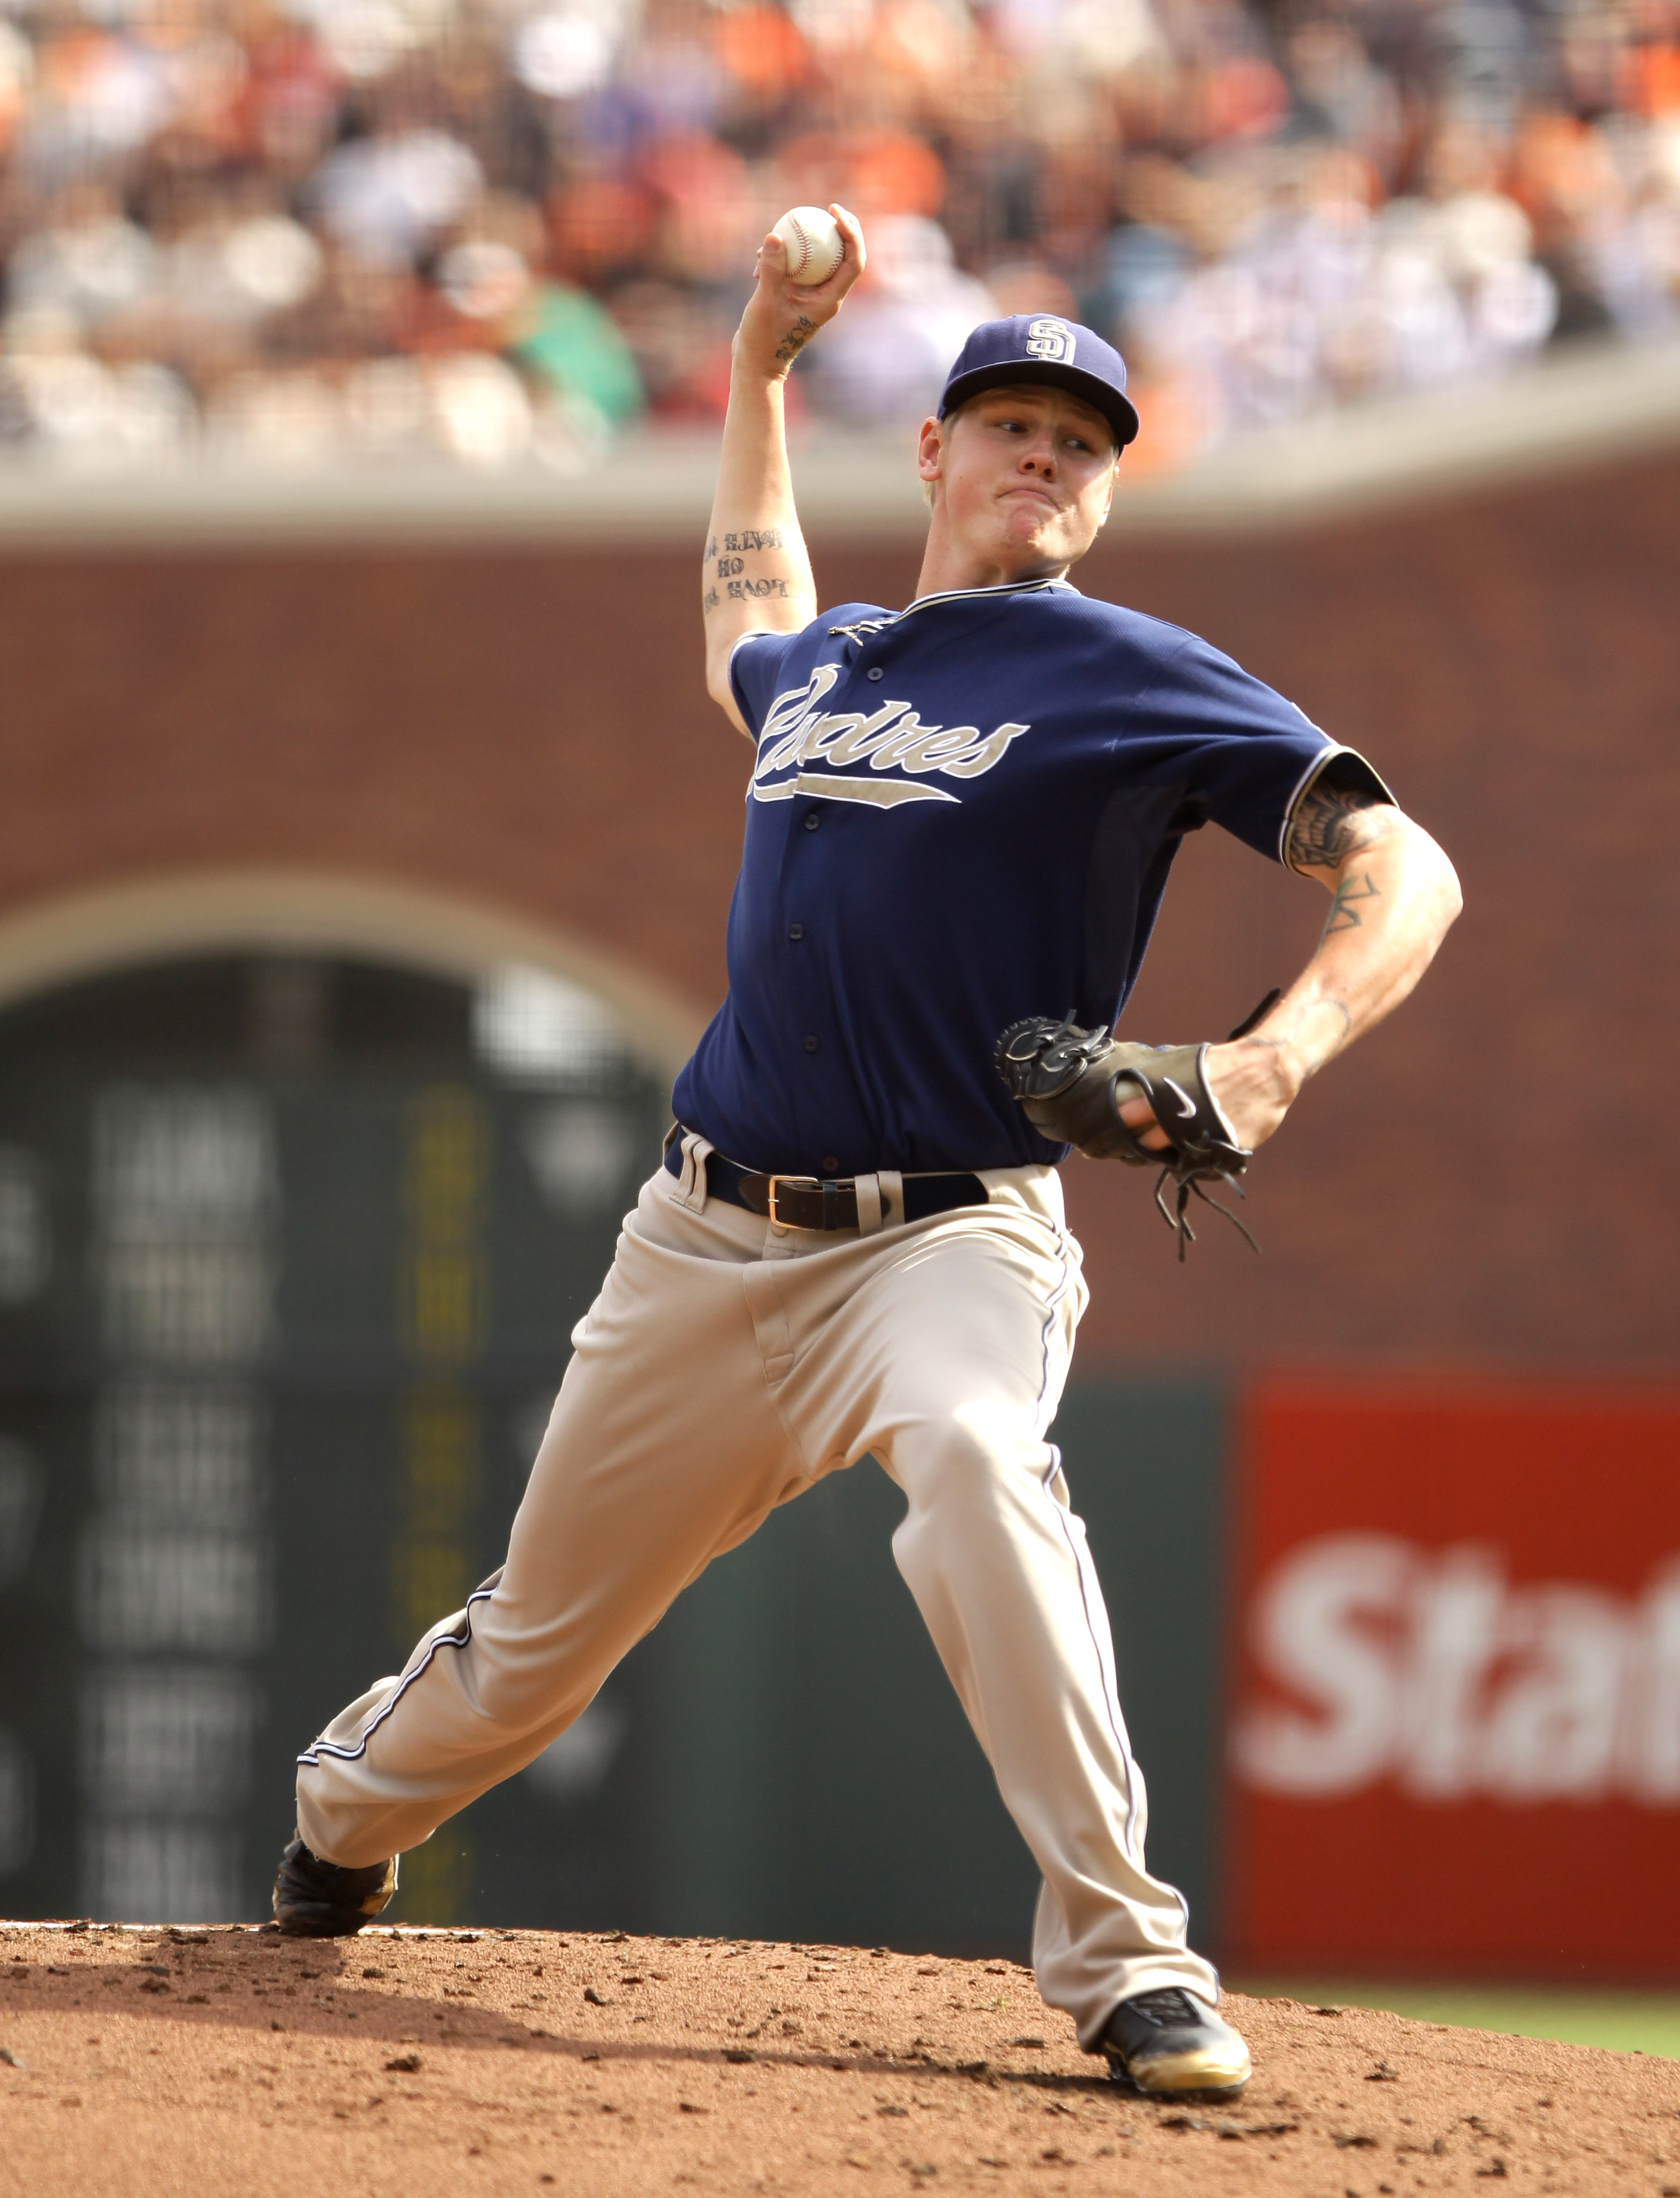 SAN FRANCISCO - OCTOBER 03:  Matt Latos #38 of the San Diego Padres pitches against the San Francisco Giants at AT&T Park on October 3, 2010 in San Francisco, California.  (Photo by Ezra Shaw/Getty Images)